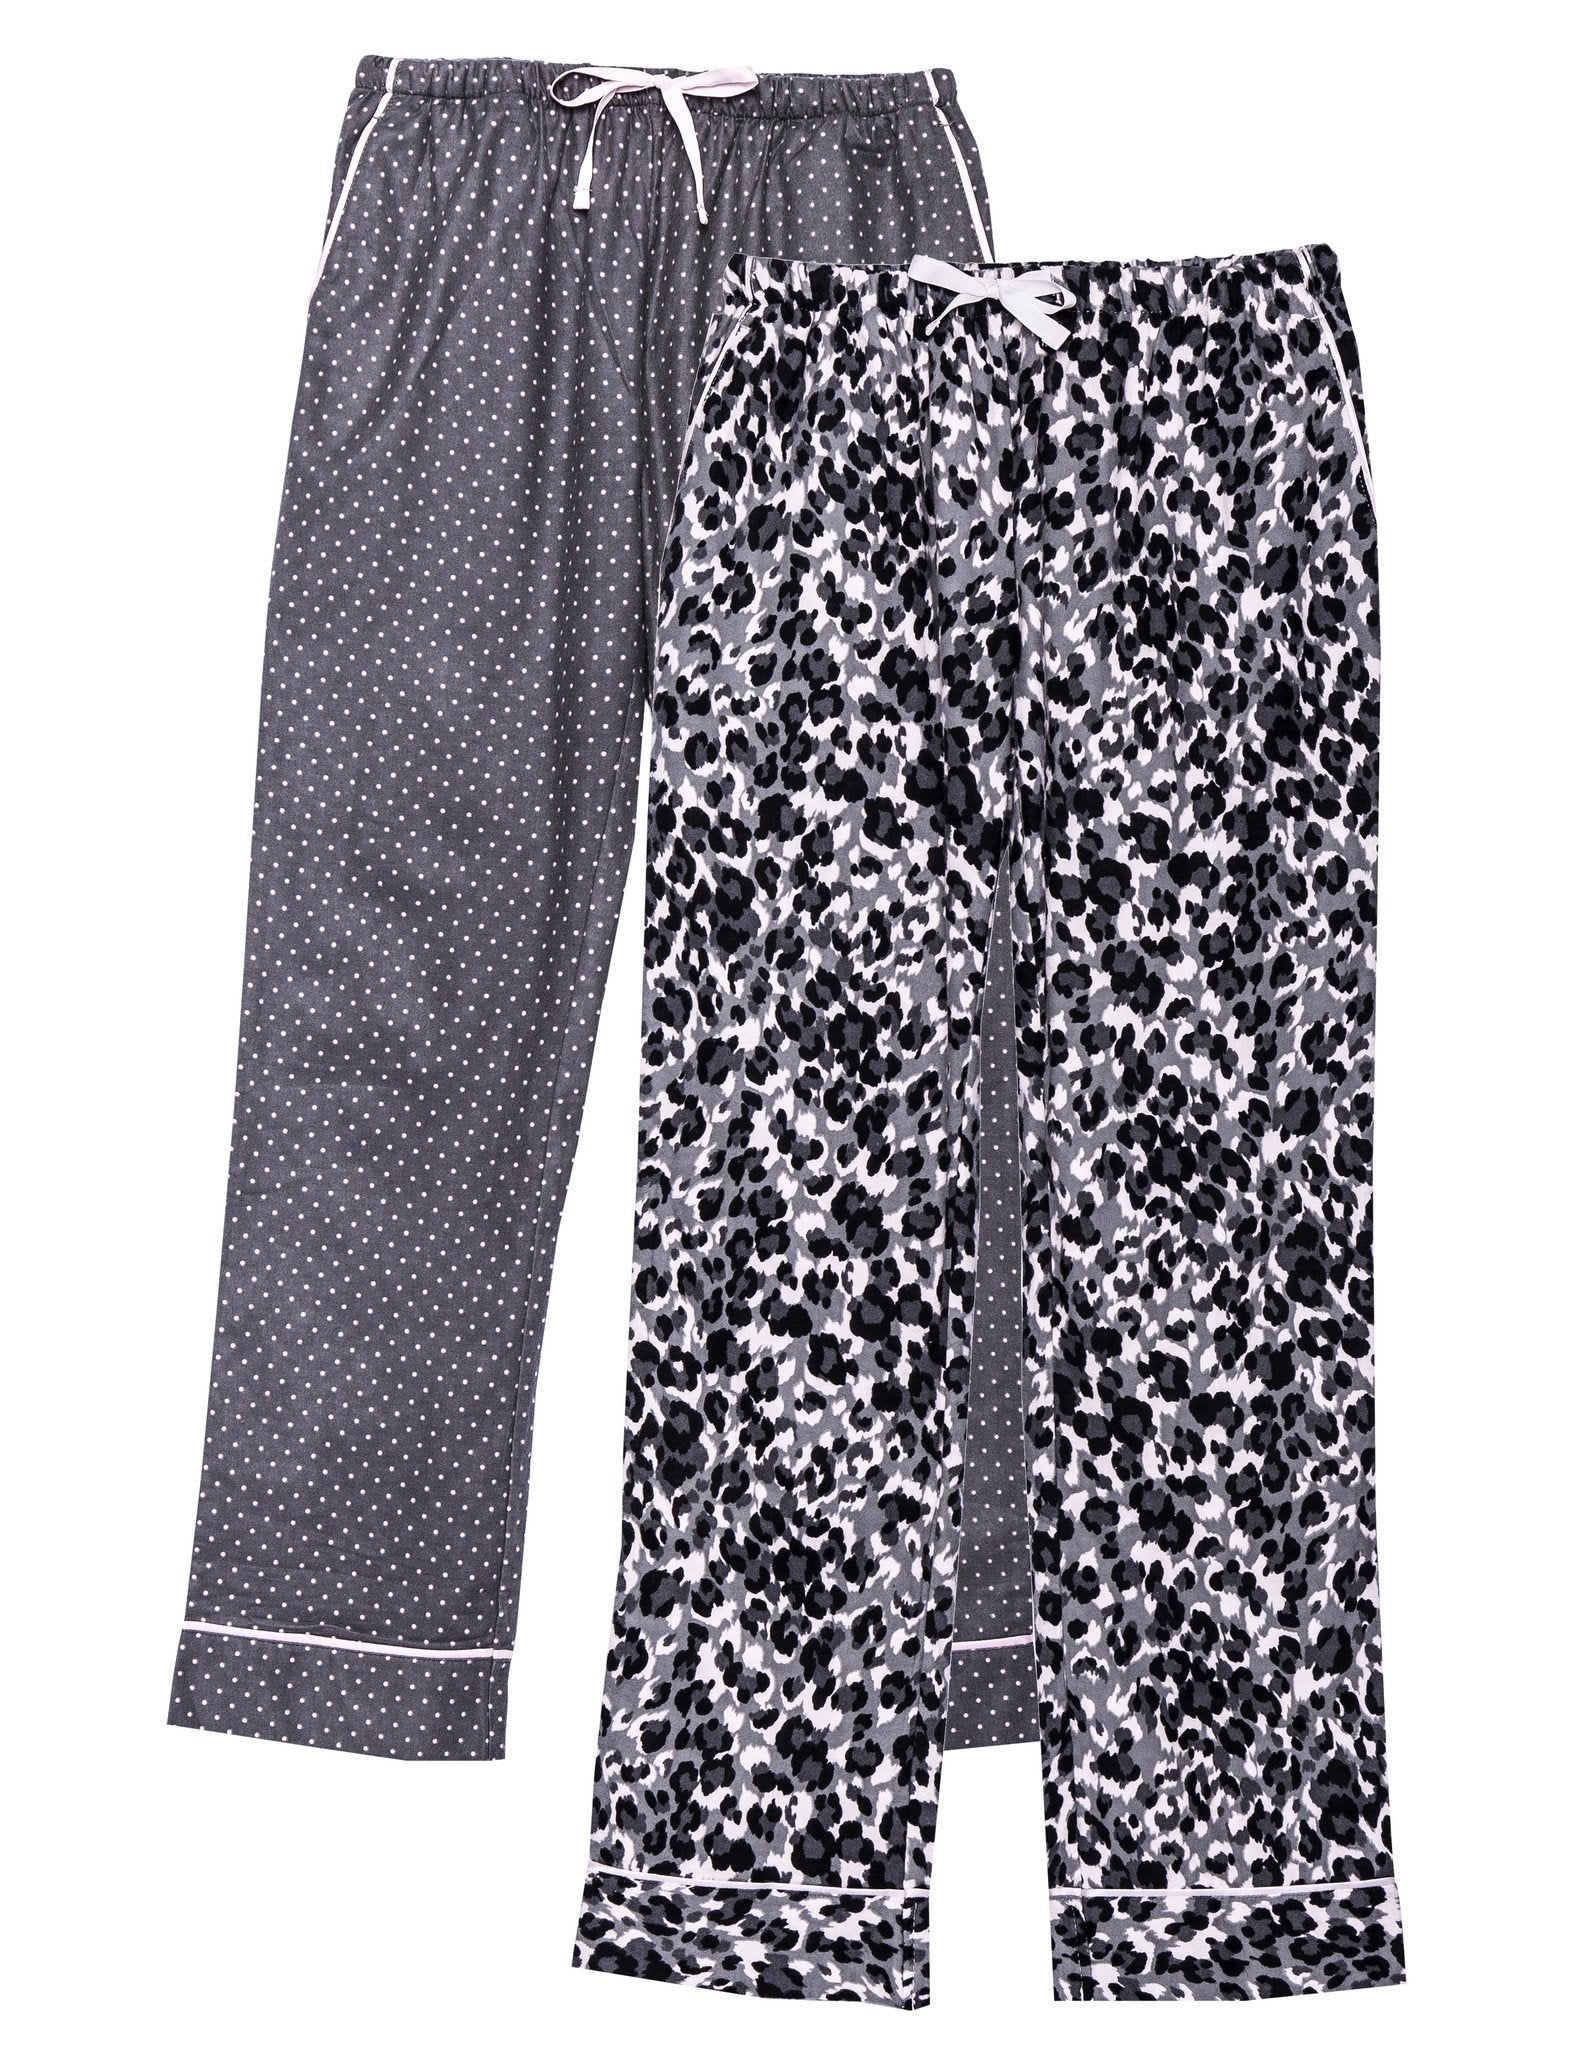 Women's 2 Pack Cotton Flannel Lounge Pants with Free Socks